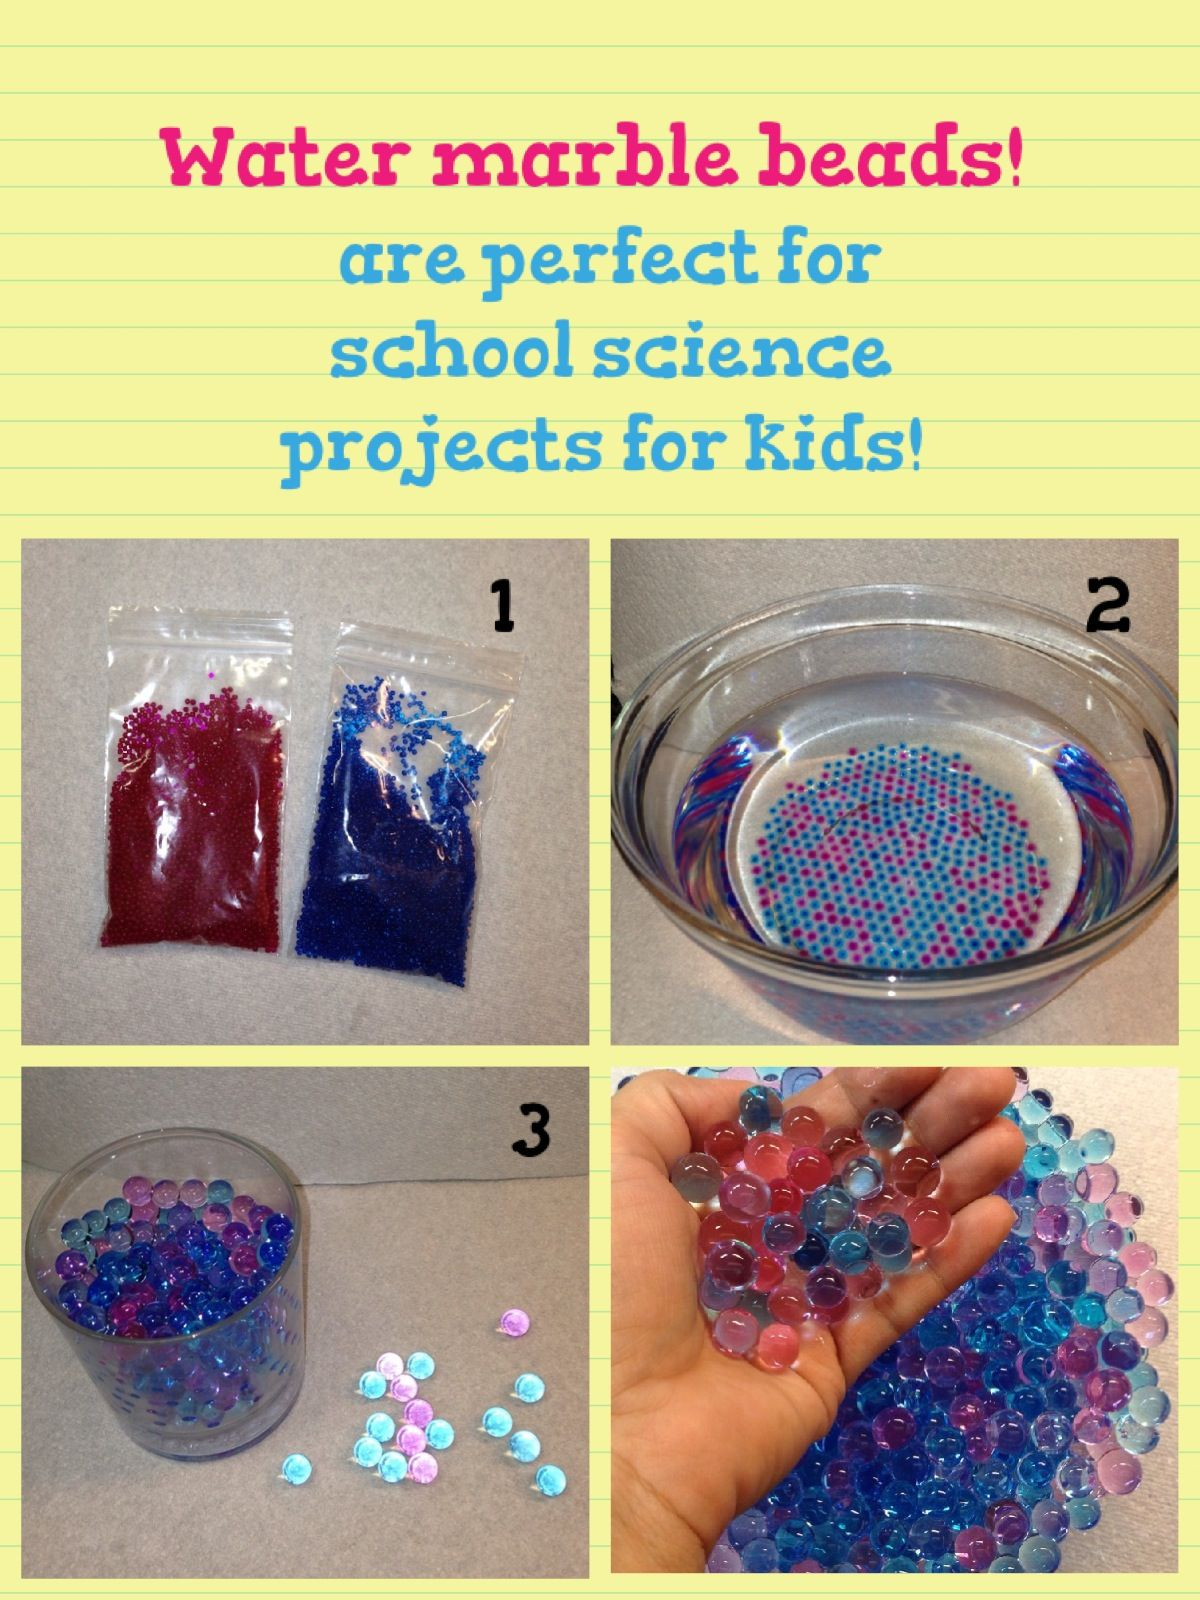 Water marble beads are so cool for school projects. Kids love this idea. Just put them in water for several hours to let them expand. The more water you add, the more they will grow until they reach their size limit. Have fun.    CAUTION: please do not allow children to swallow the marbles is very dangerous!!!!!!!!